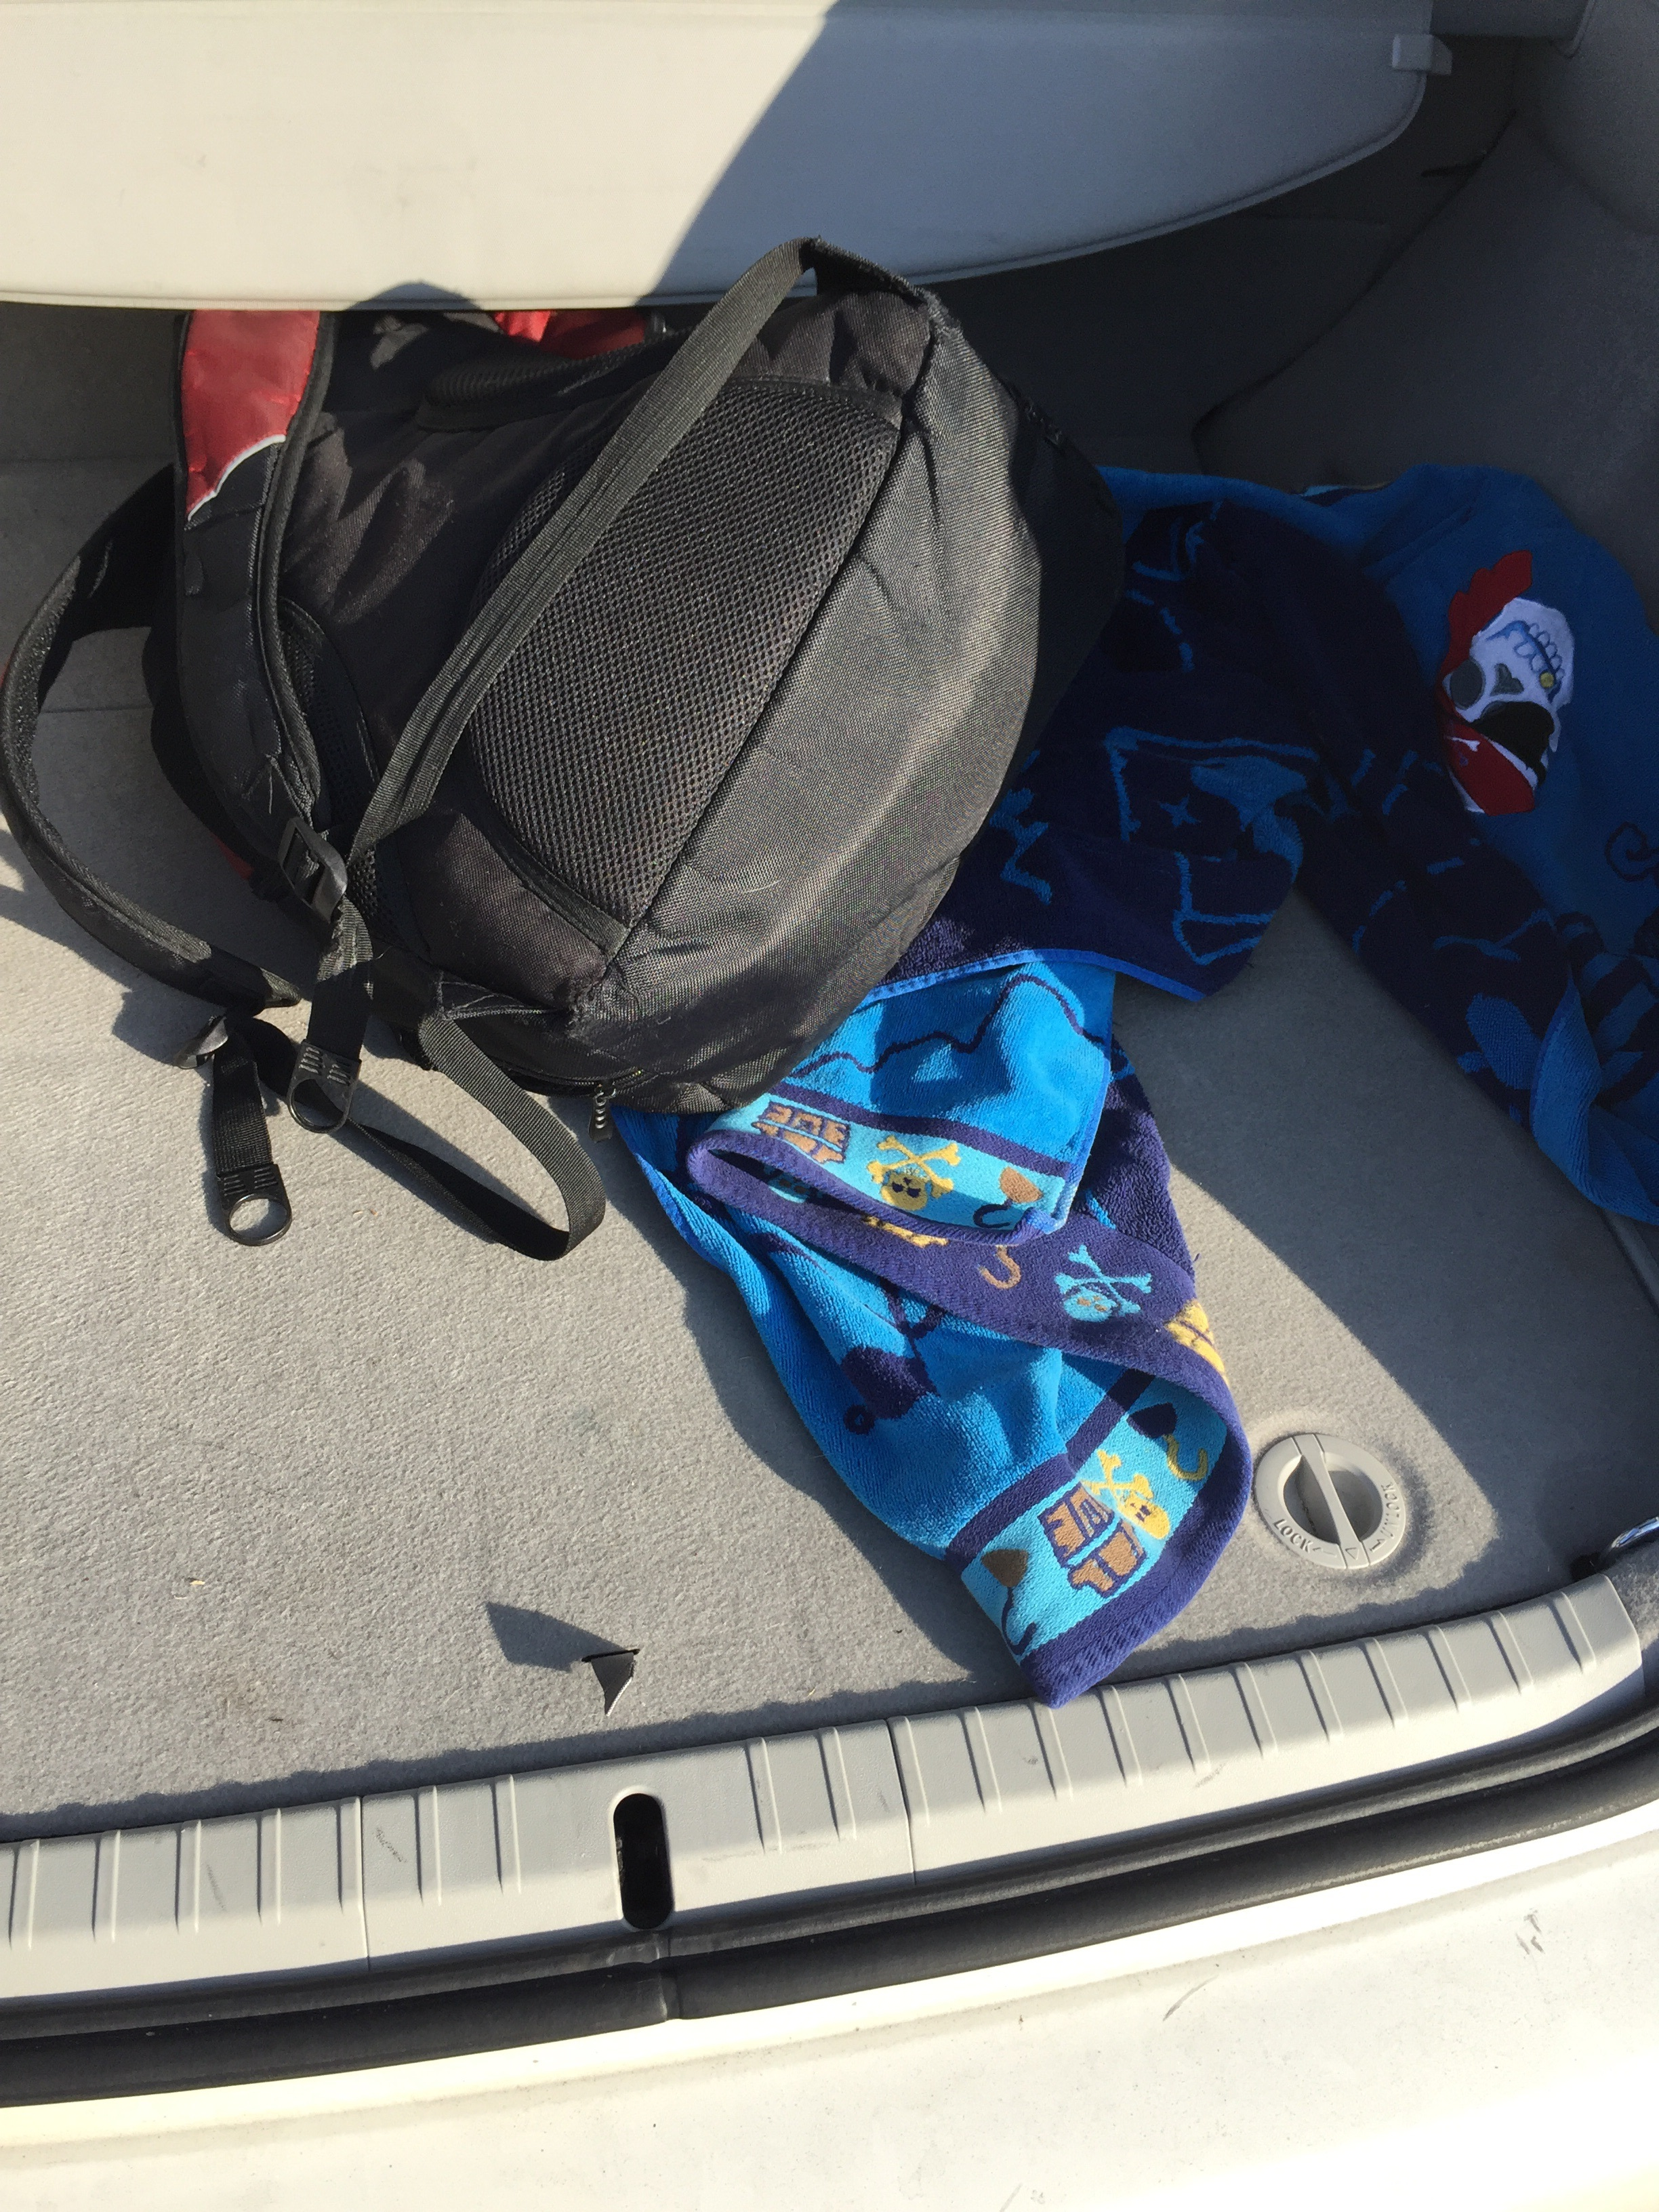 That's my gym bag, and towel, as I pulled them from the car